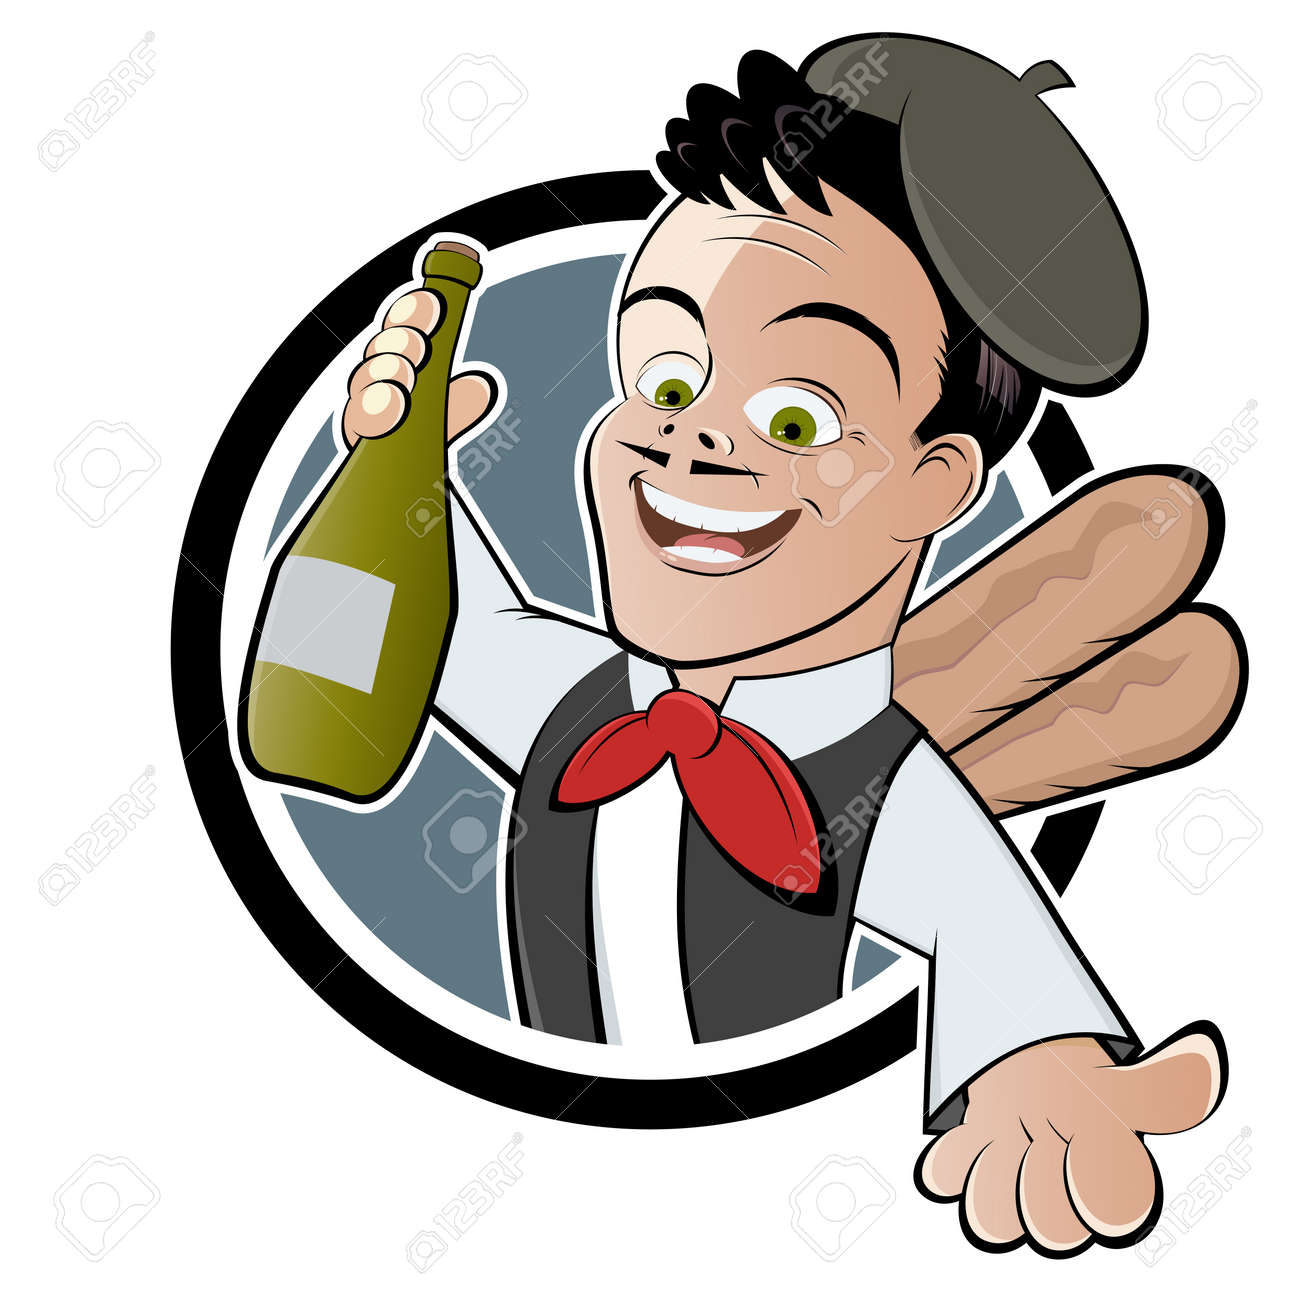 french man with wine royalty free cliparts vectors and stock rh 123rf com French Beret Clip Art French Guys Talking Clip Art